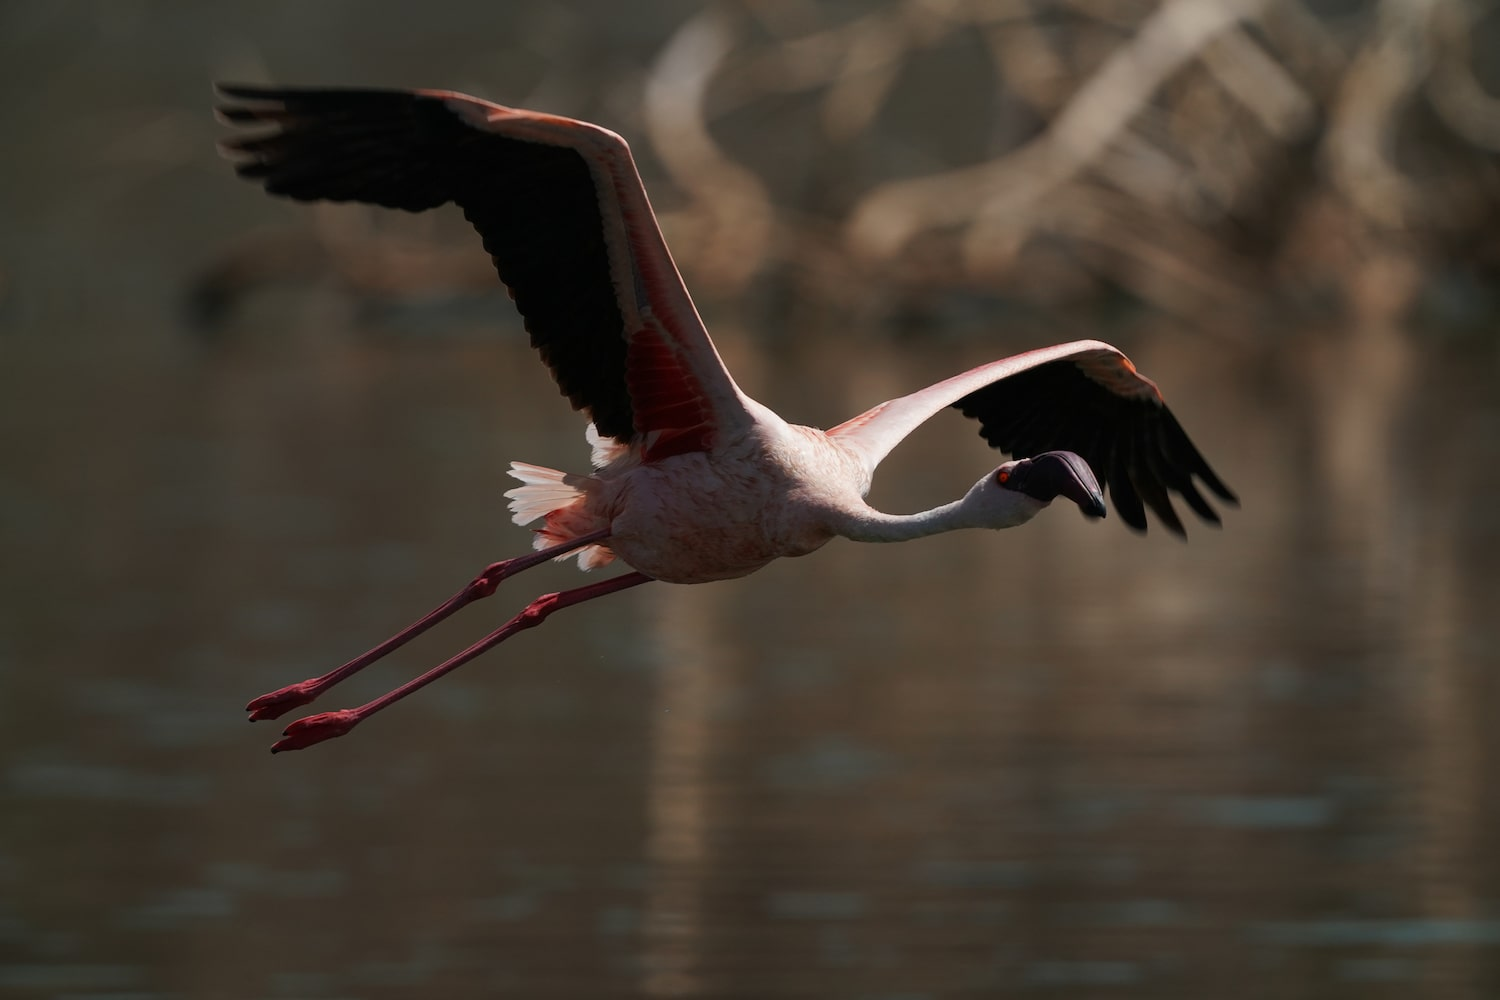 flamingo-in-flight-across-lake-alpha-7III